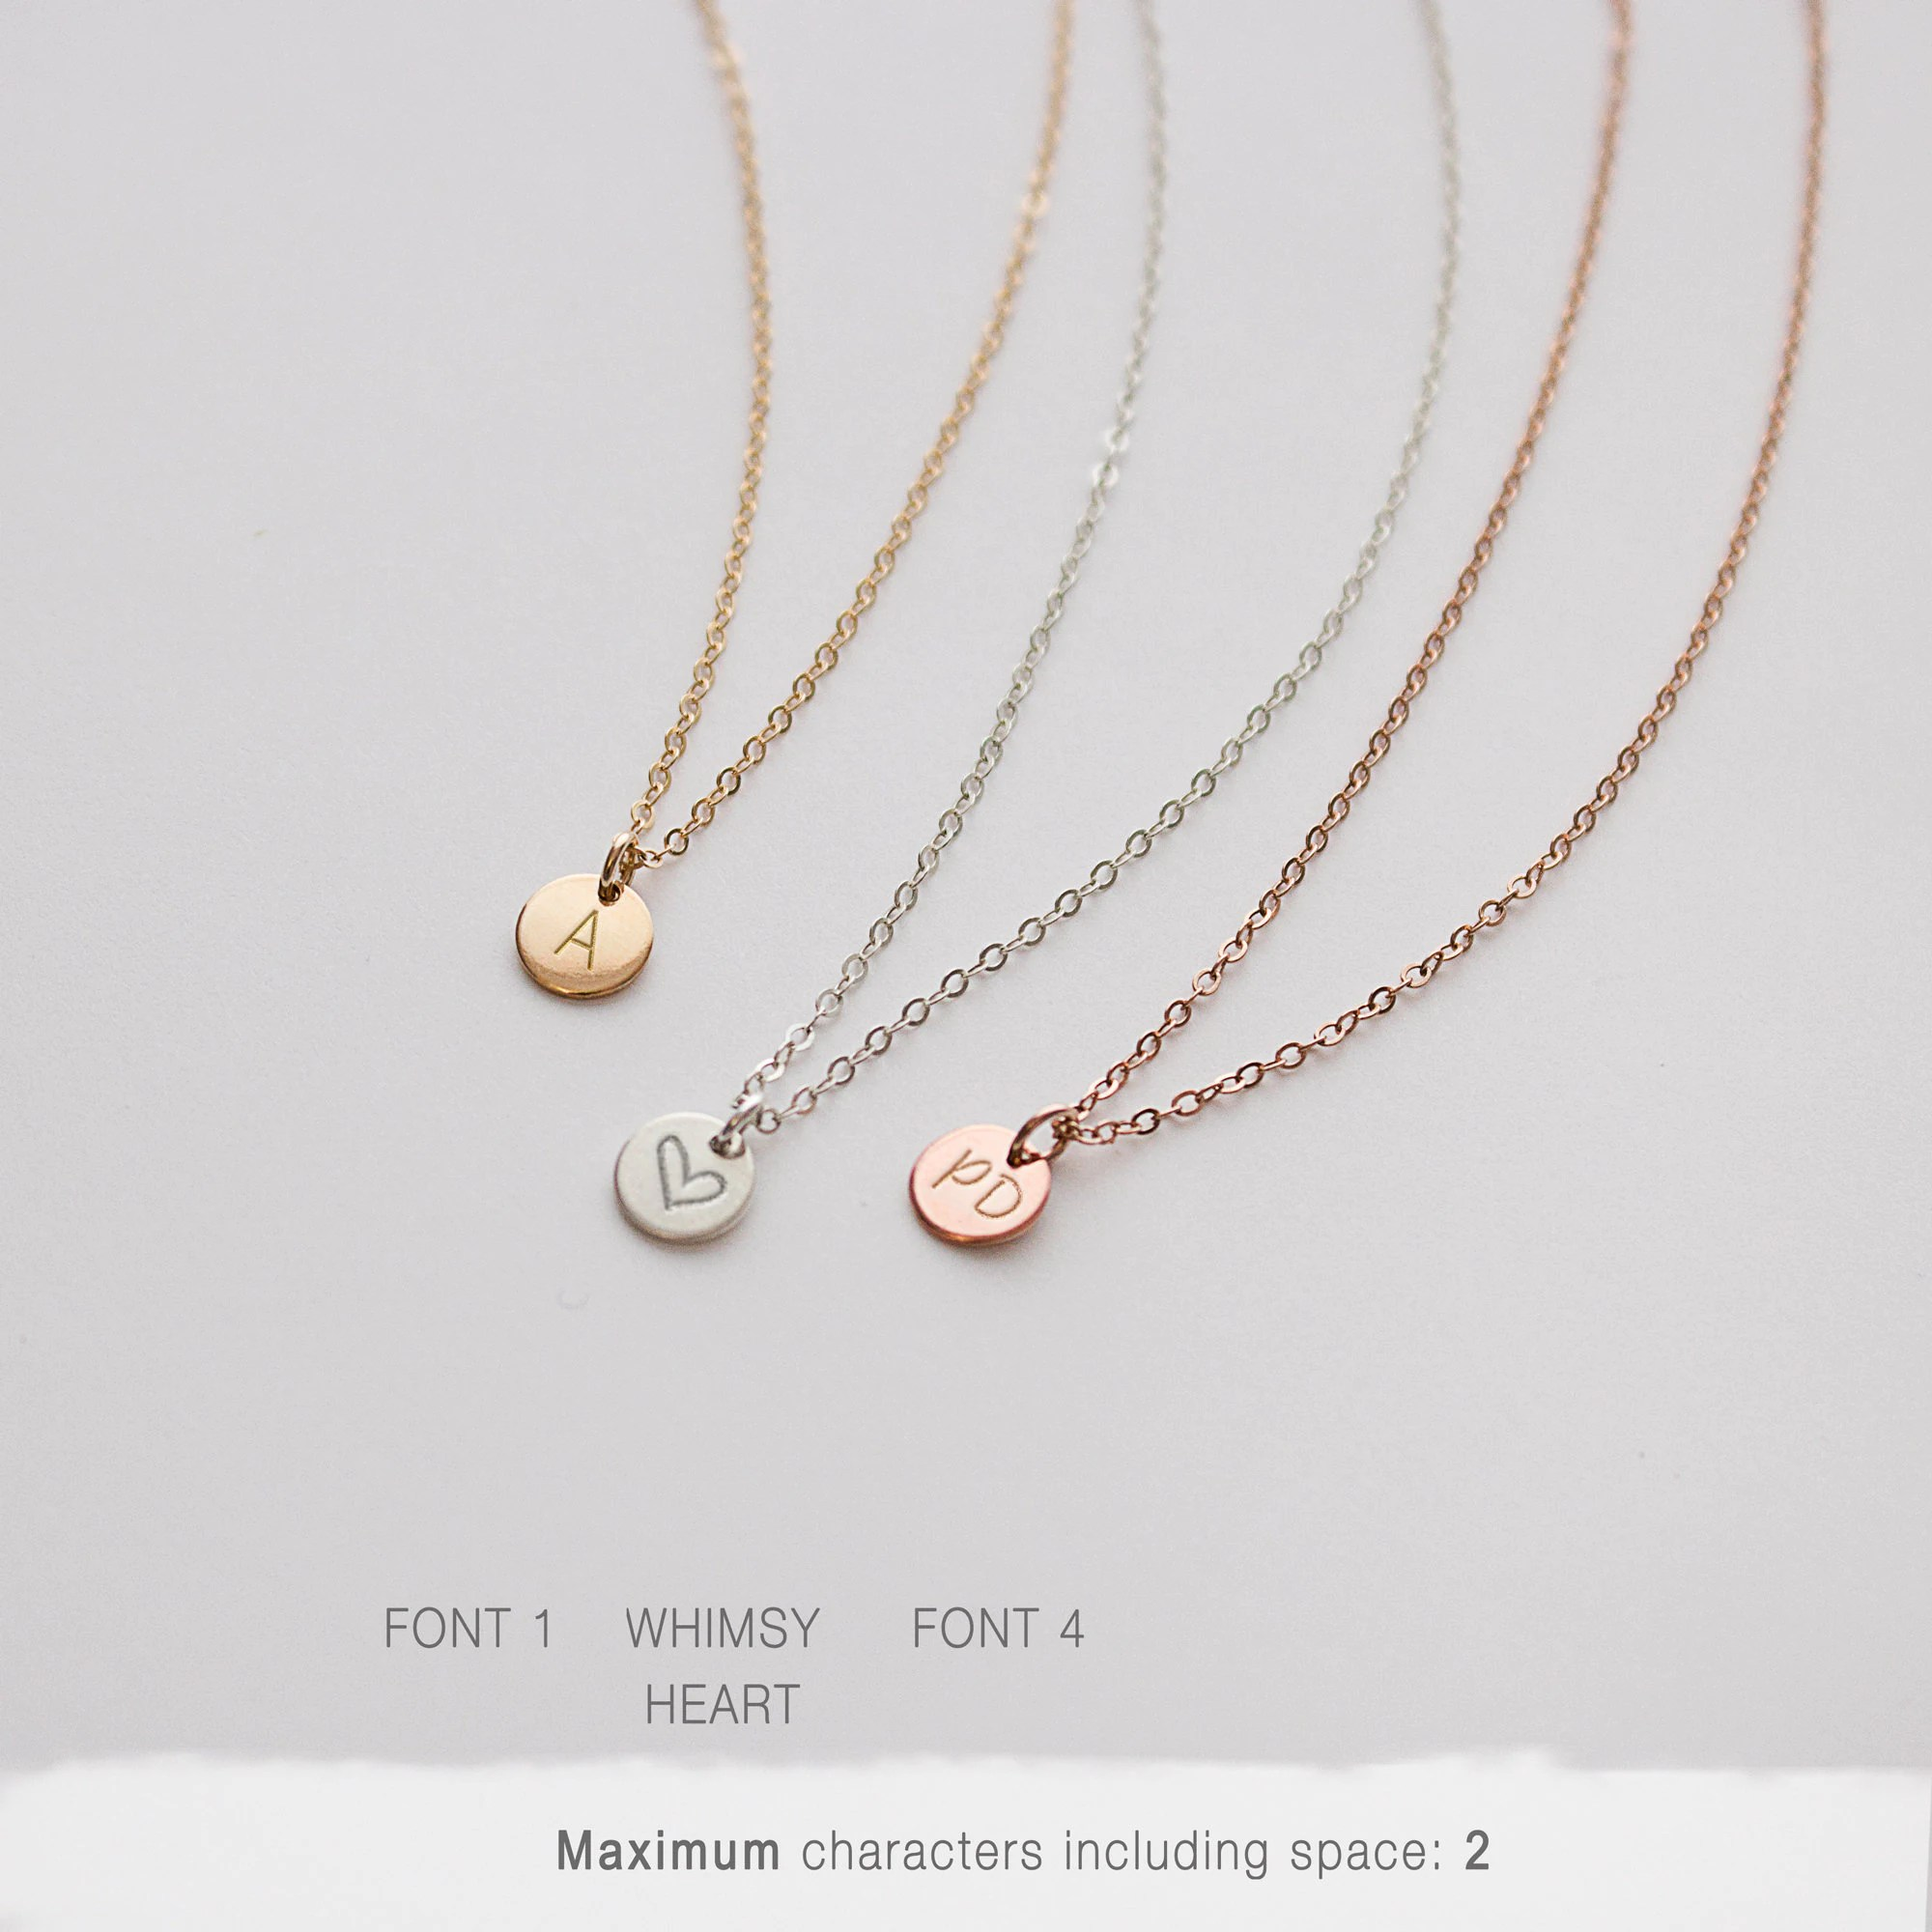 Minimal Delicate Initial Necklace Personalized Tiny Letter image 2